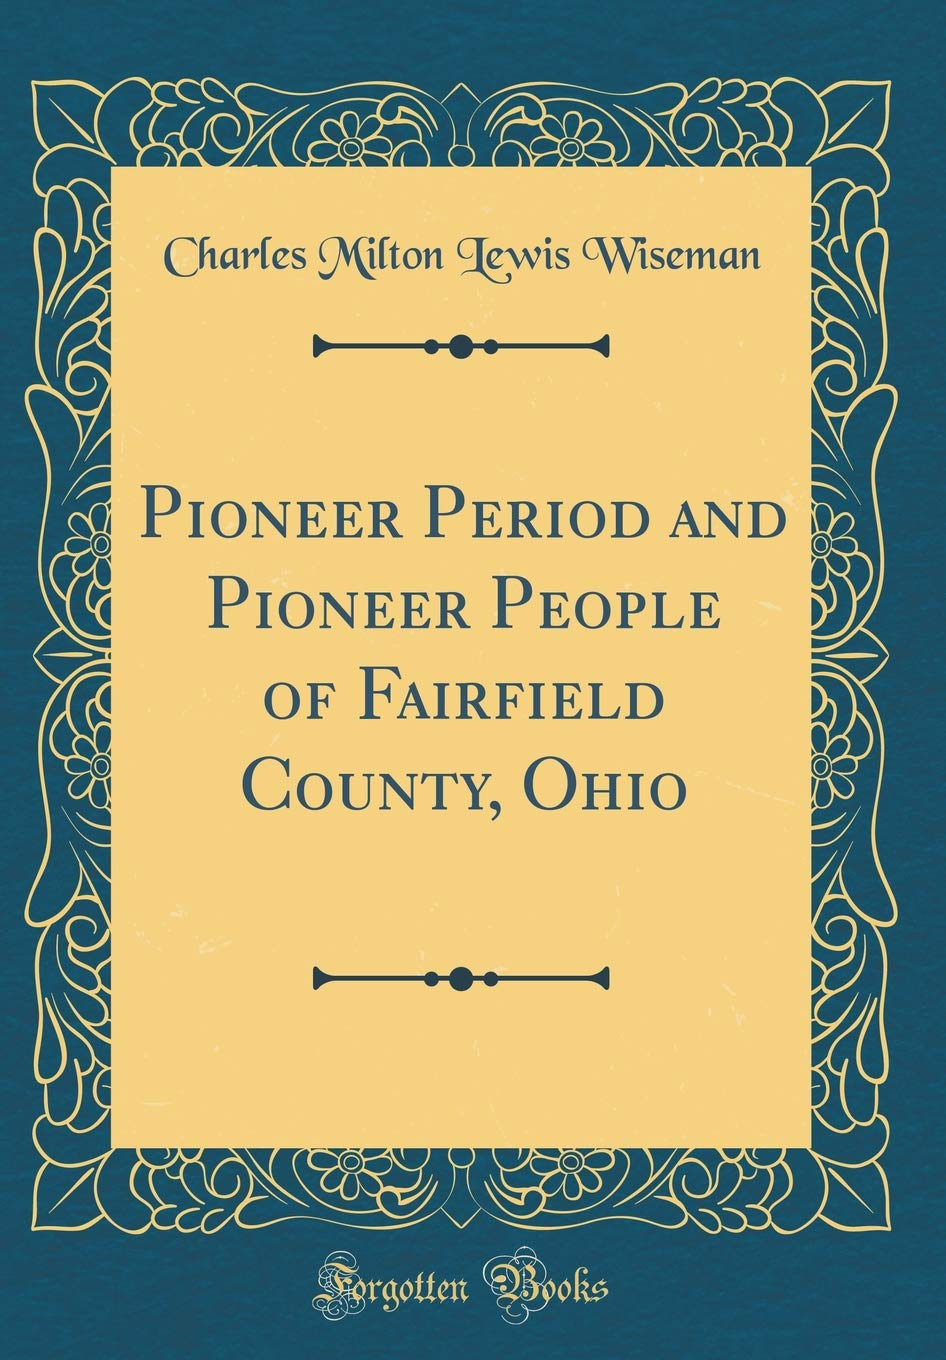 Pioneer period and pioneer people of Fairfield County, Ohio